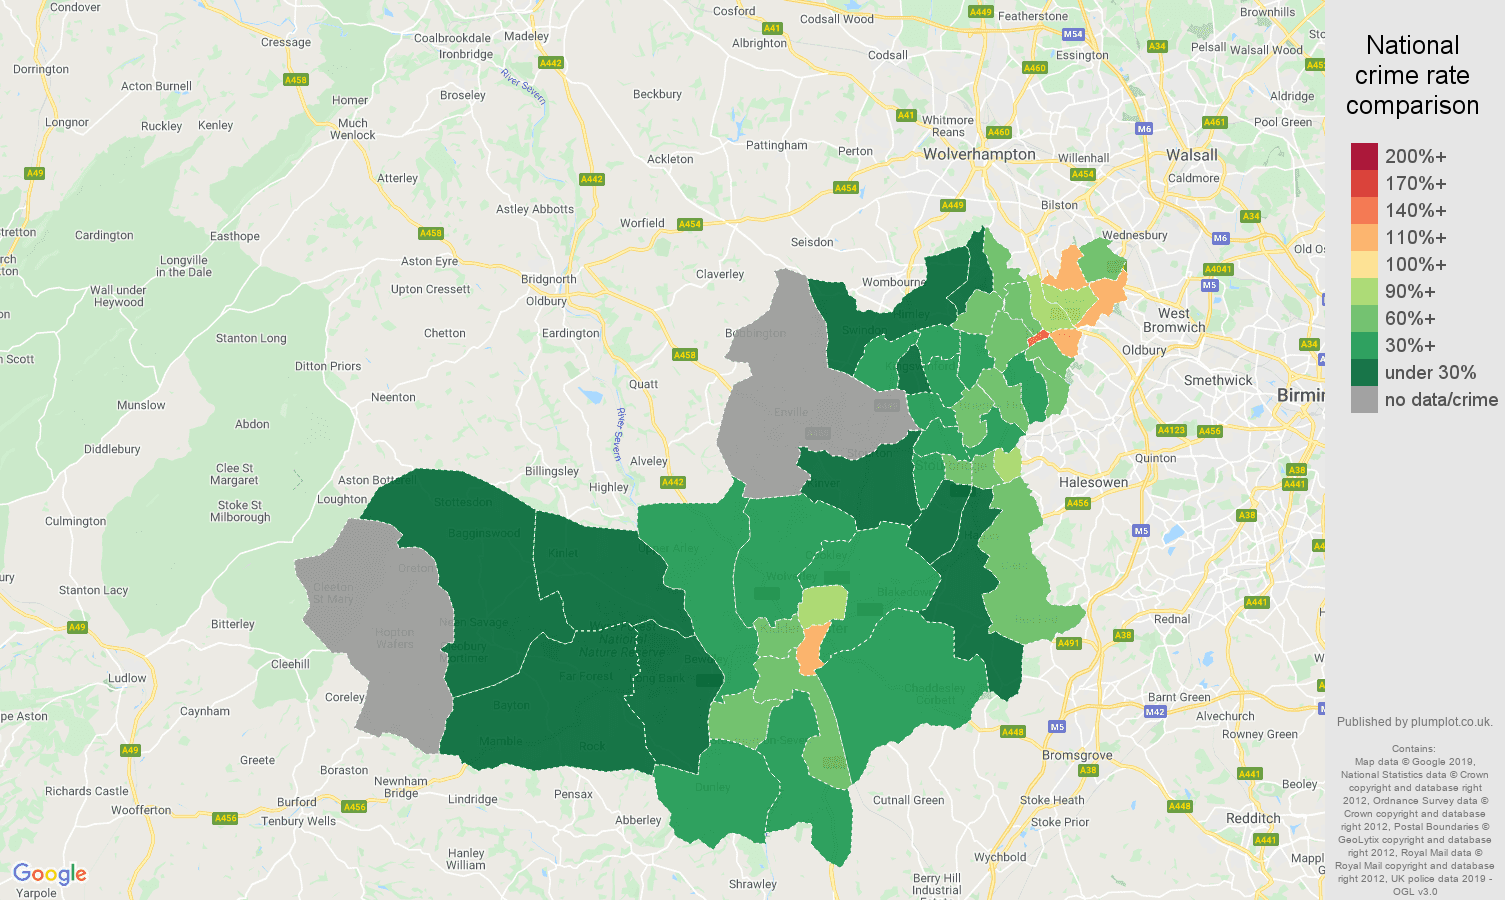 Dudley public order crime rate comparison map